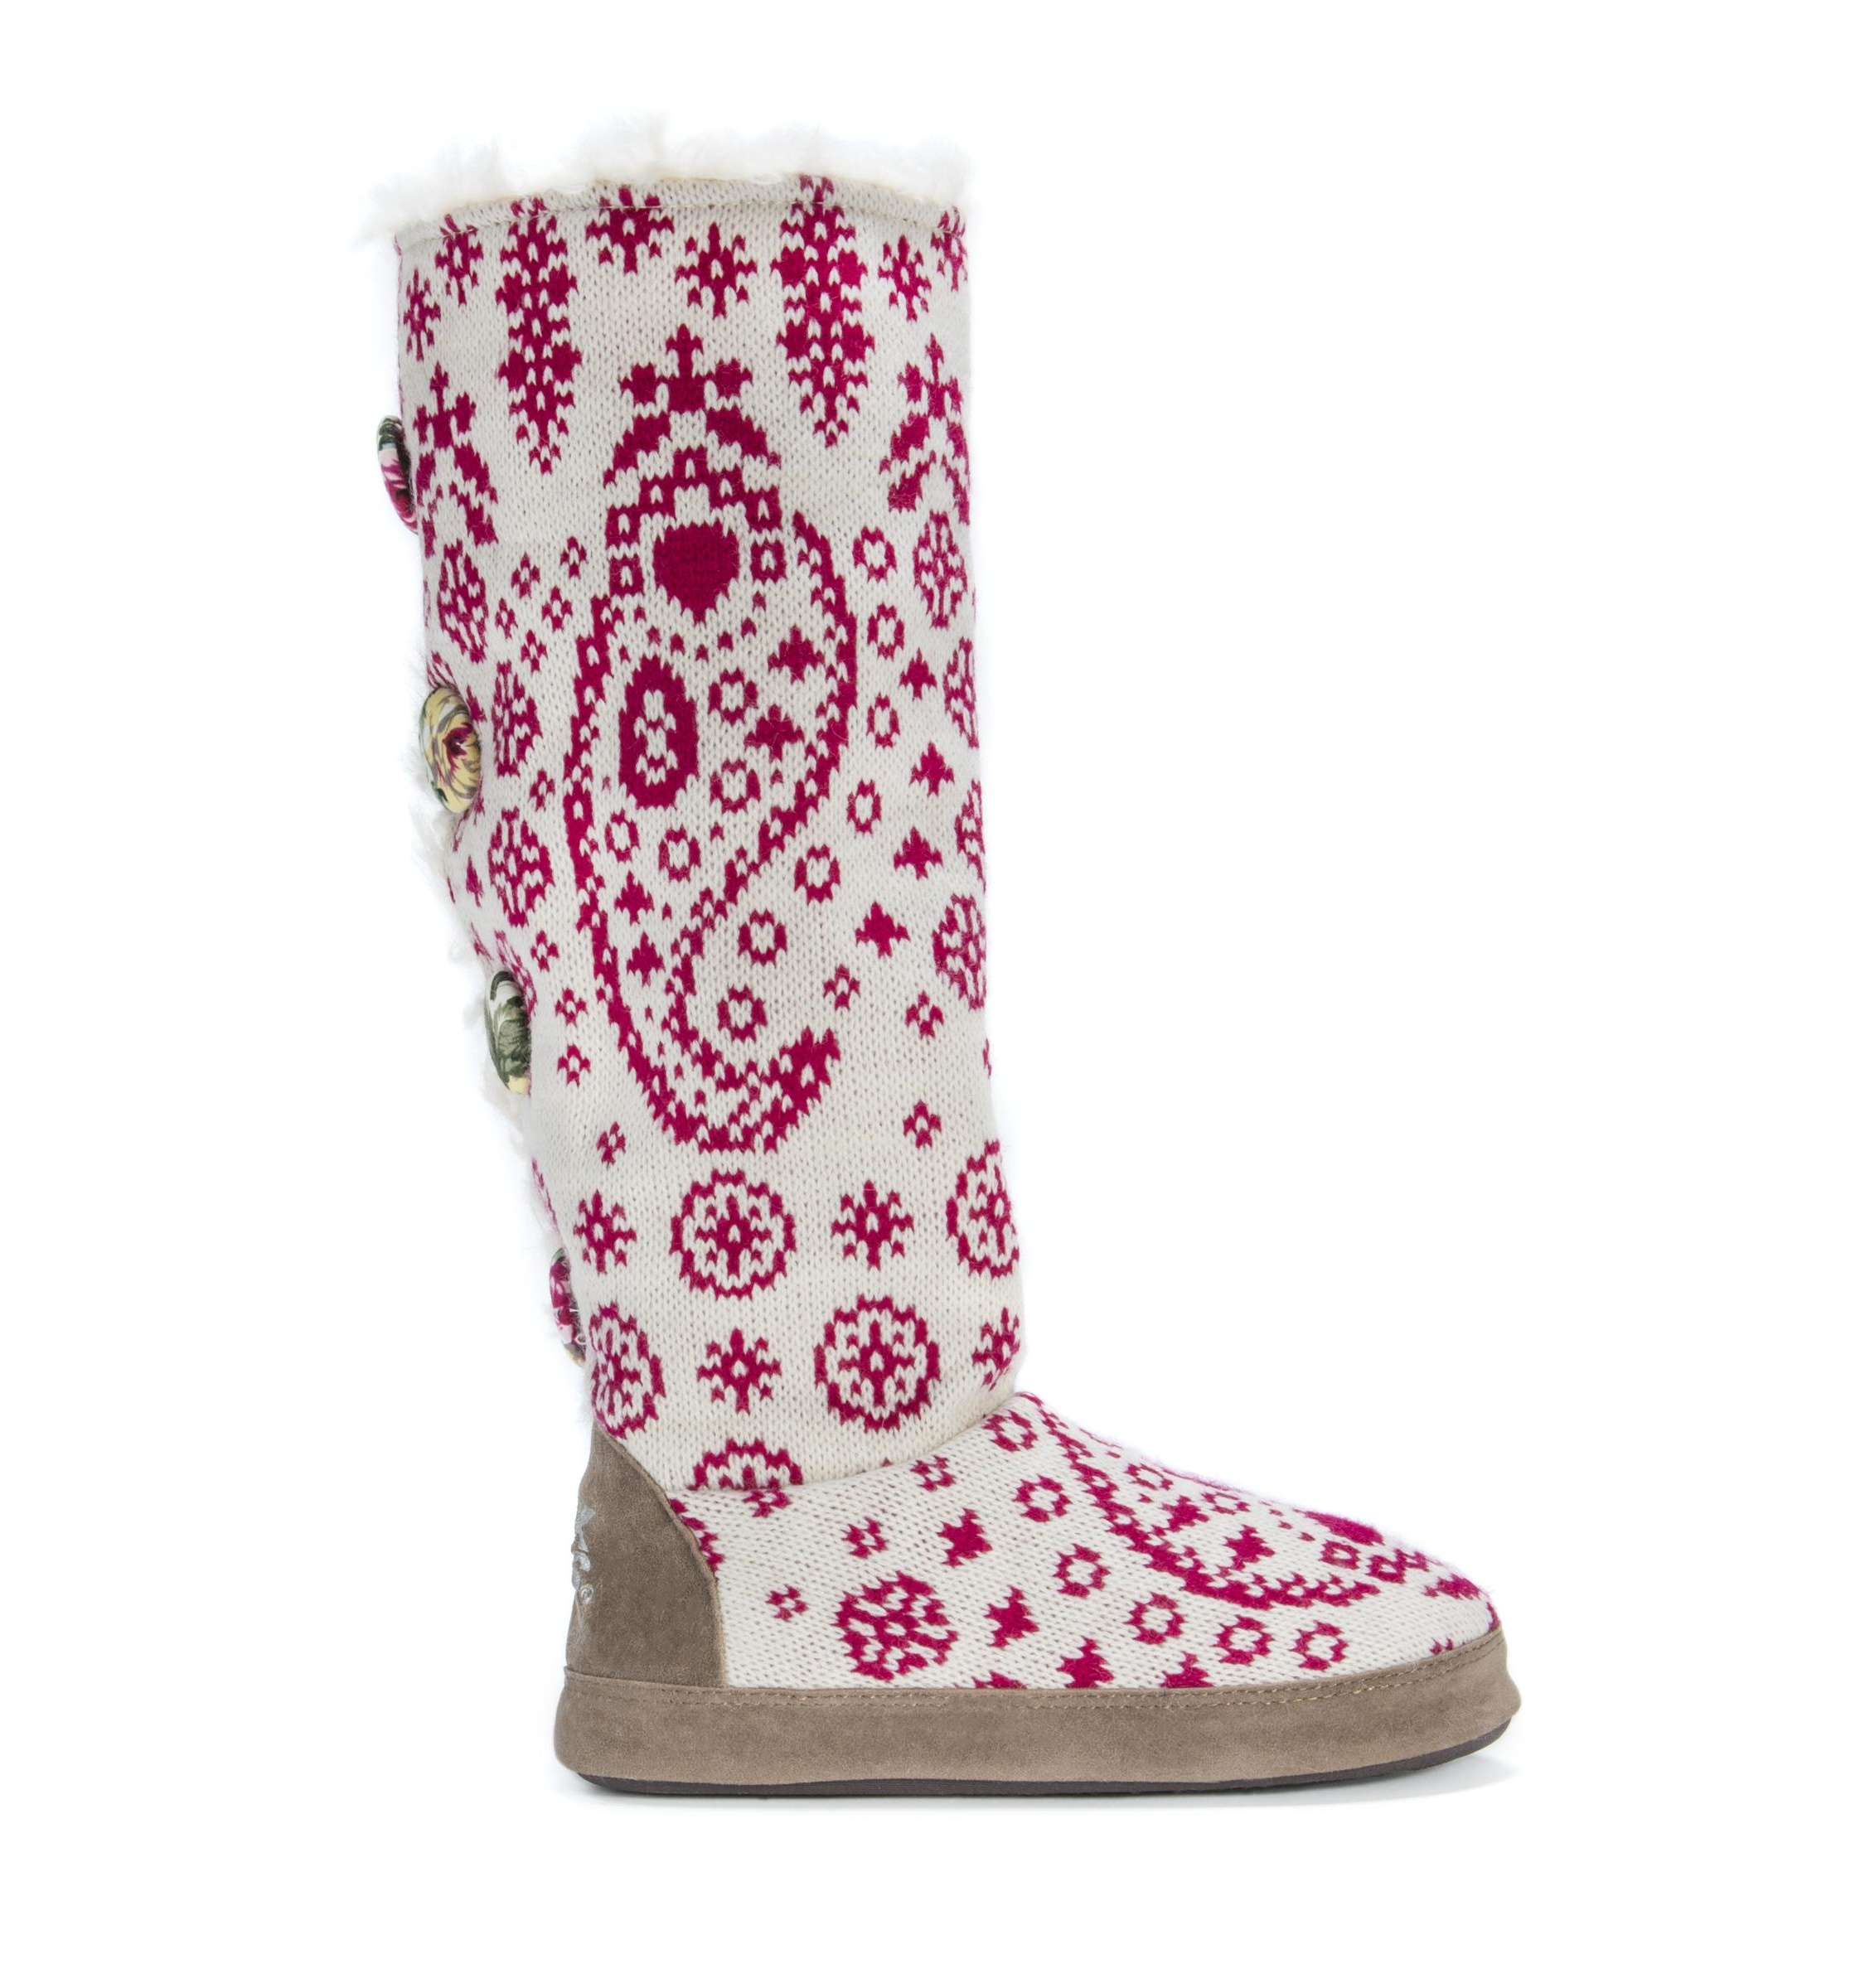 MUK LUKS Women's Maleah Slippers Economical, stylish, and eye-catching shoes